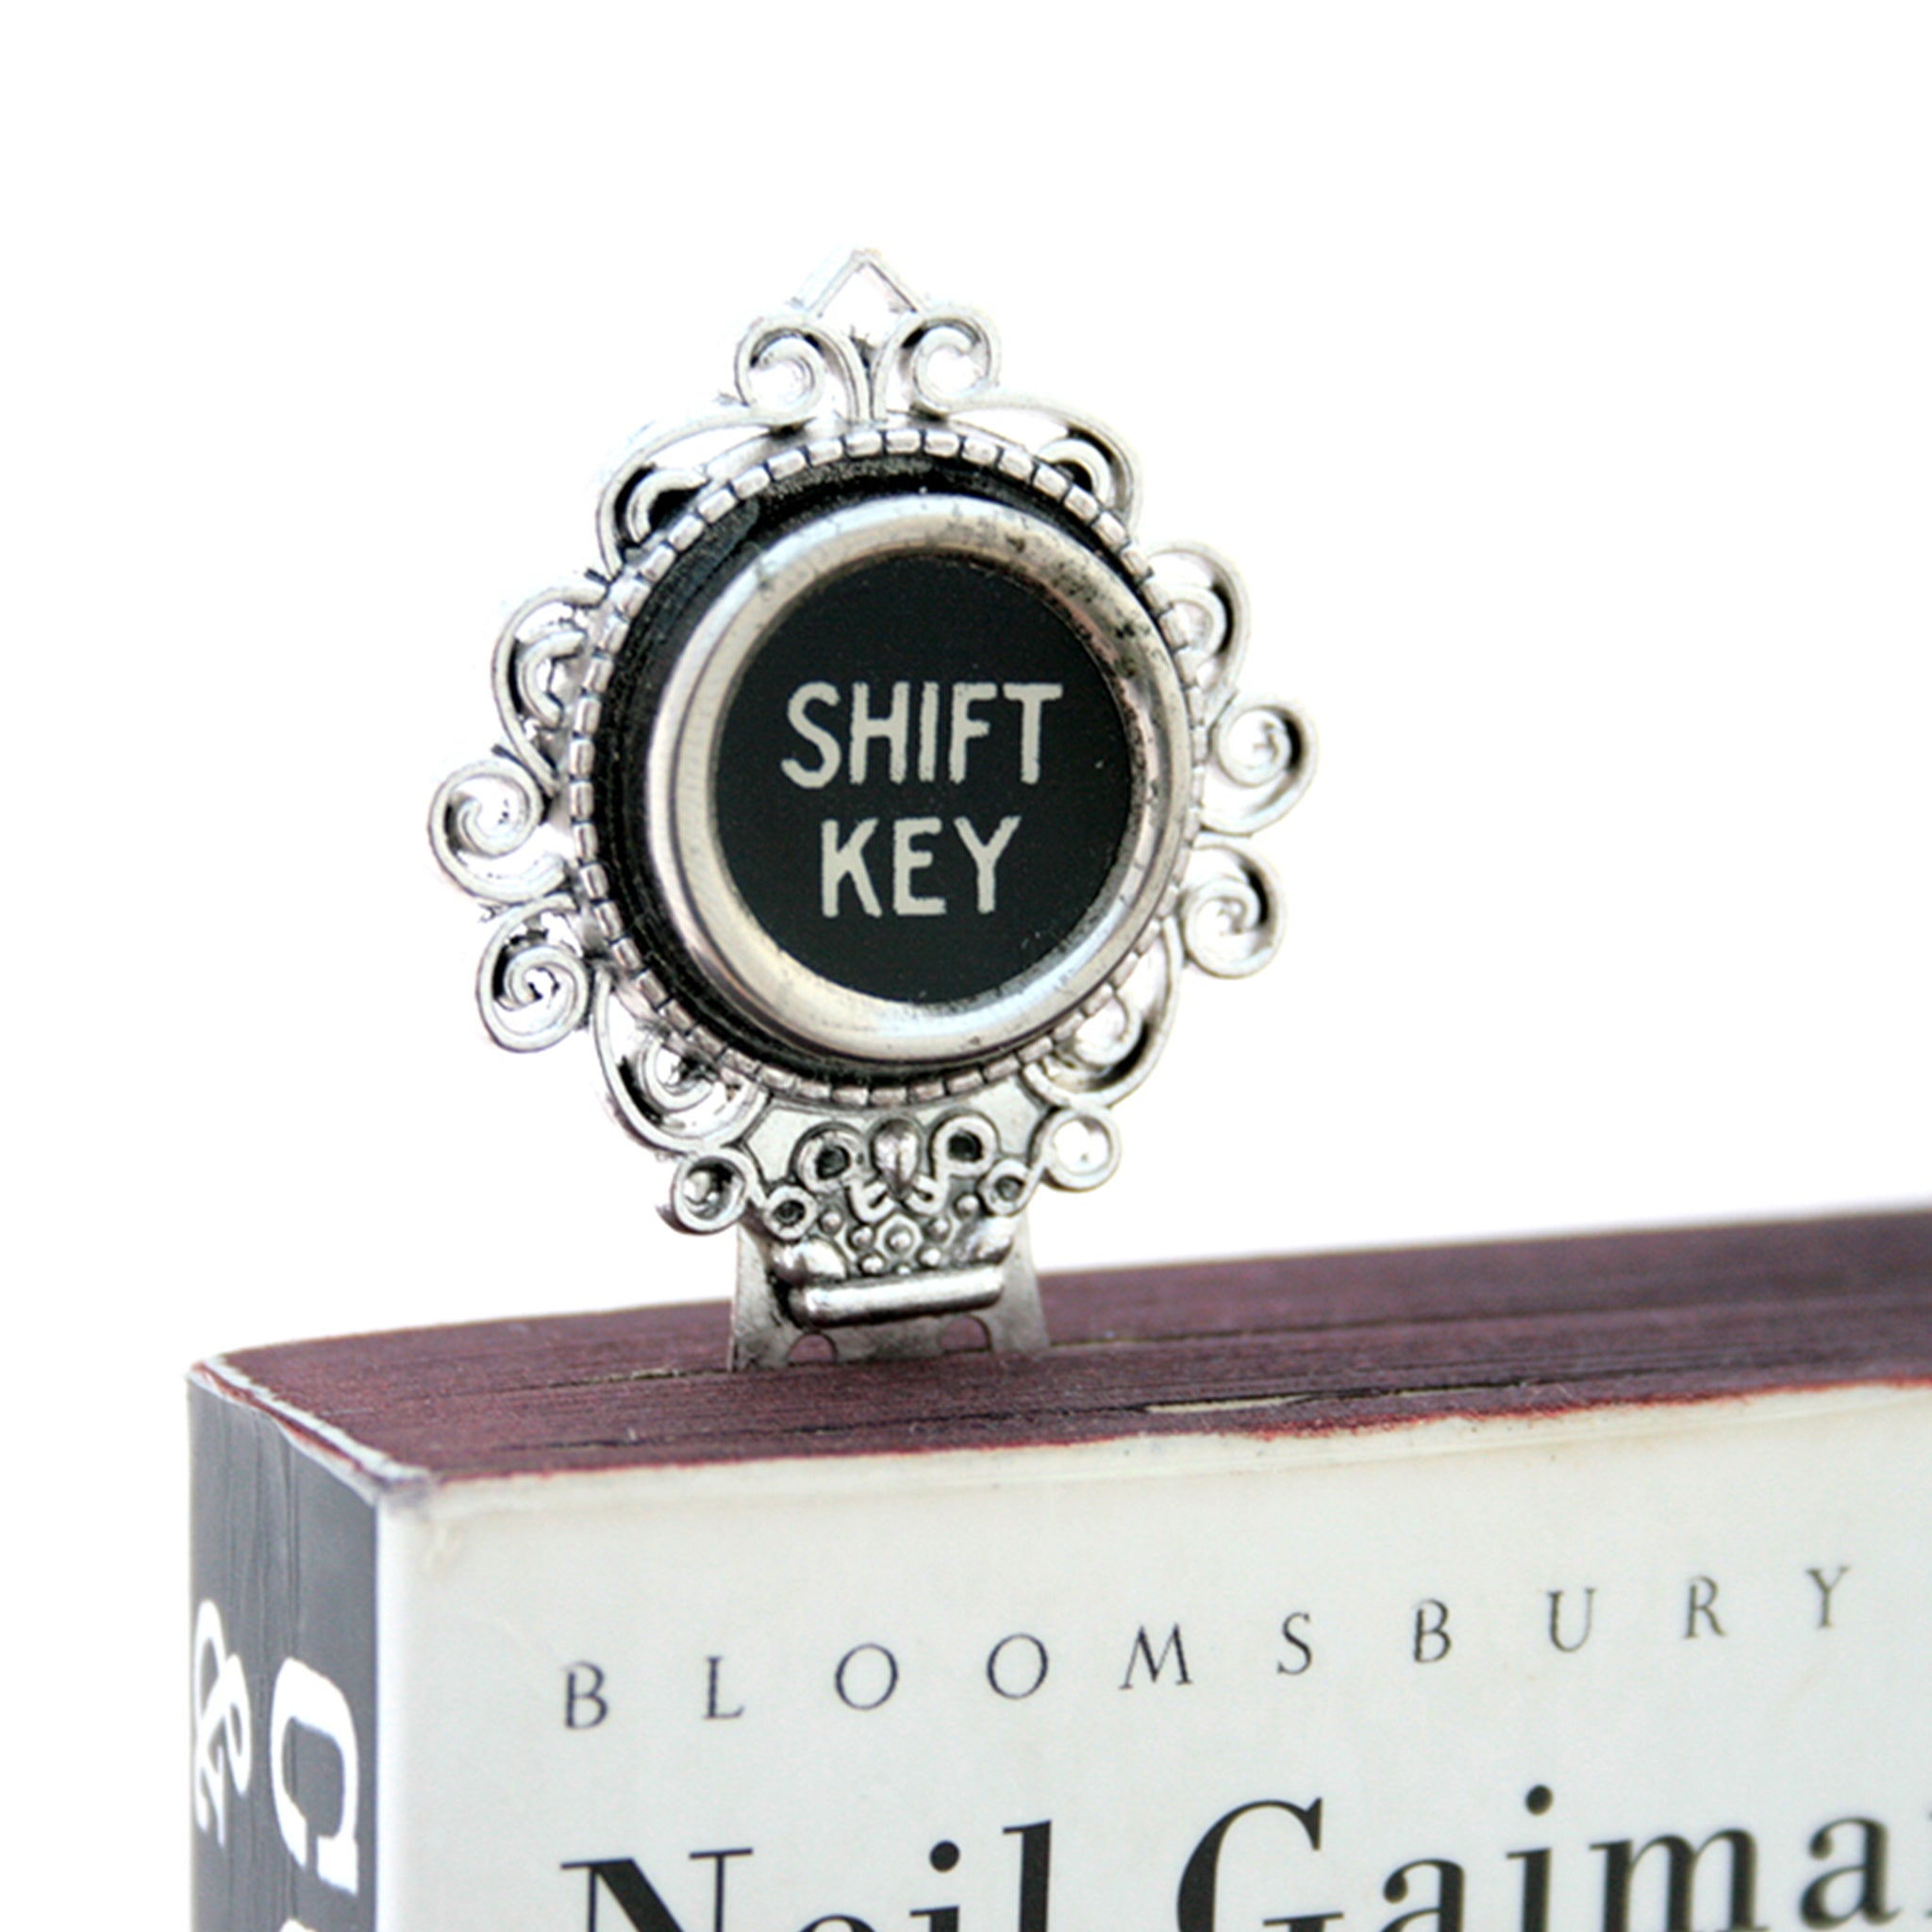 Metal bookmark made of real Shift Key from the typewriter in a book